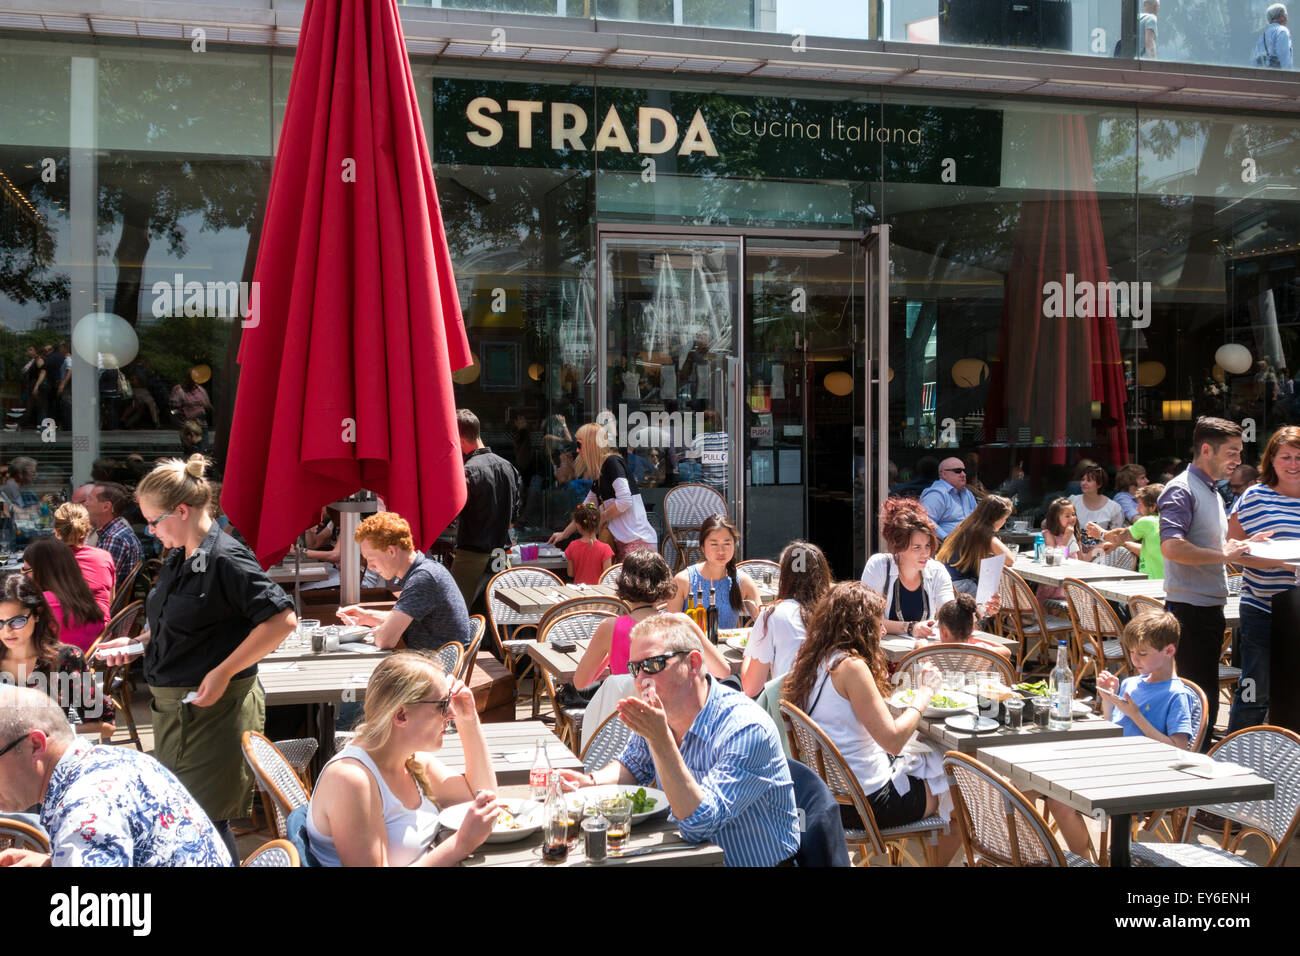 people-eating-and-drinking-at-the-strada